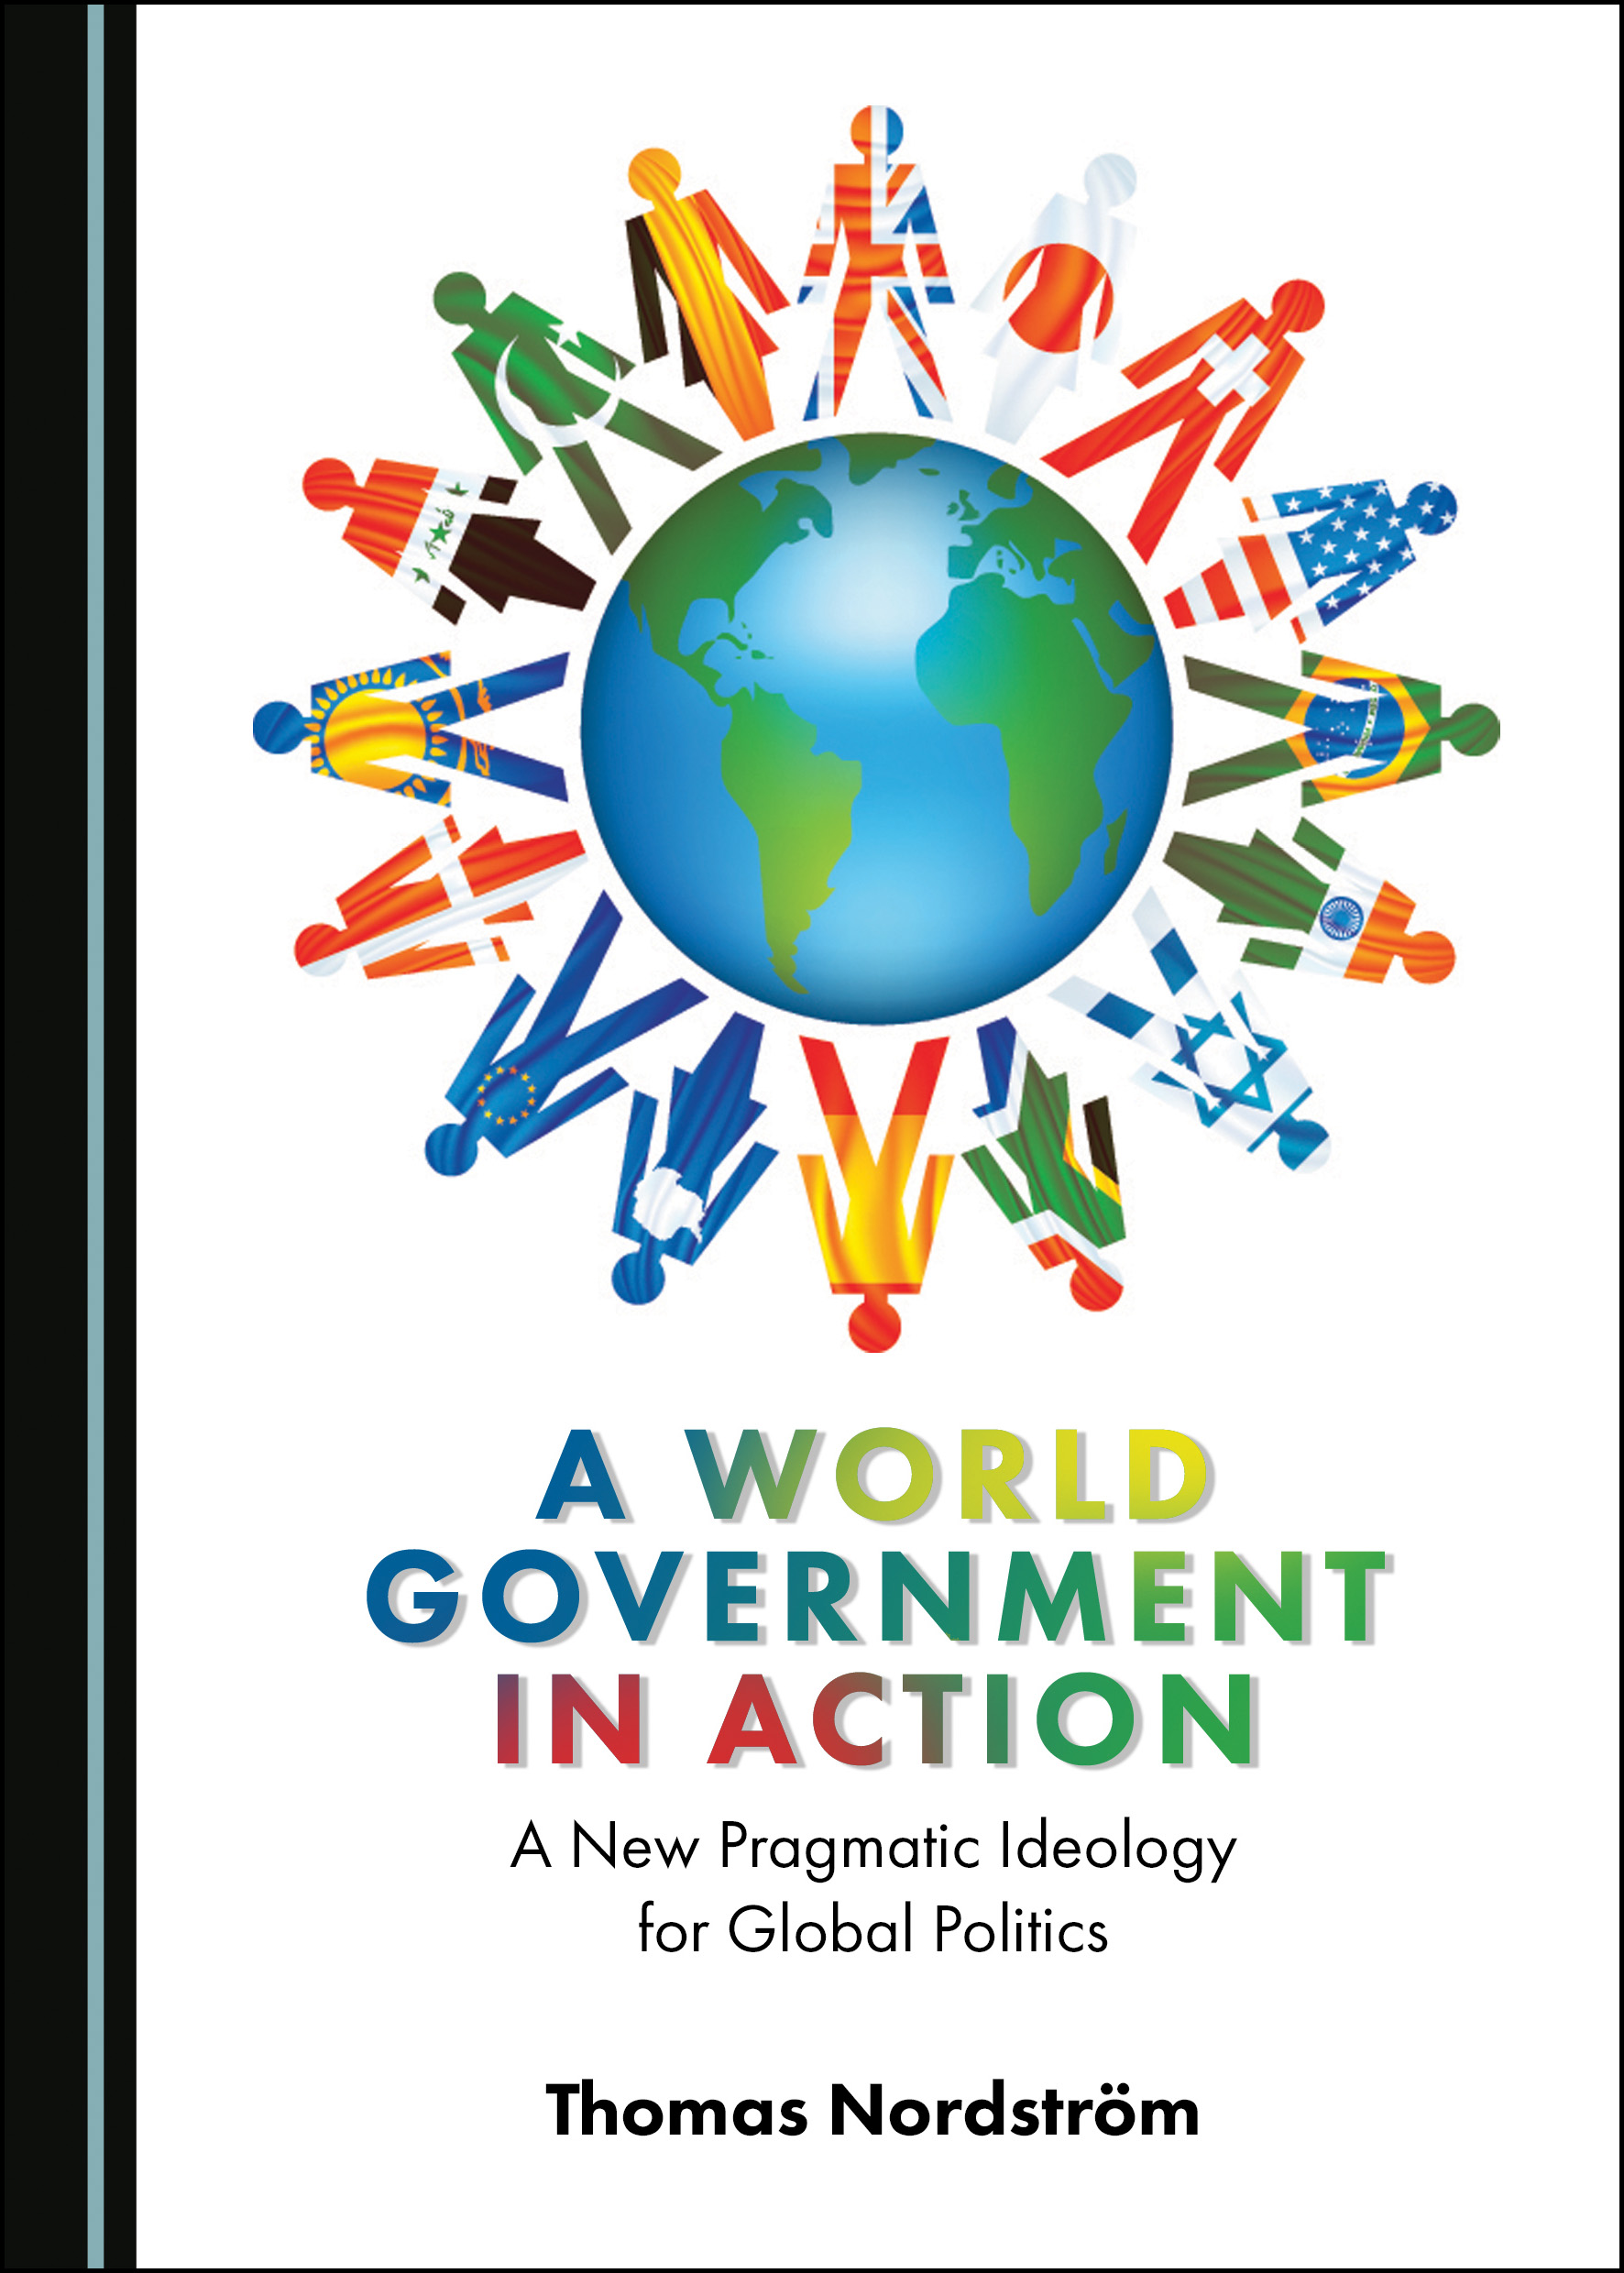 A World Government in Action: A New Pragmatic Ideology for Global Politics